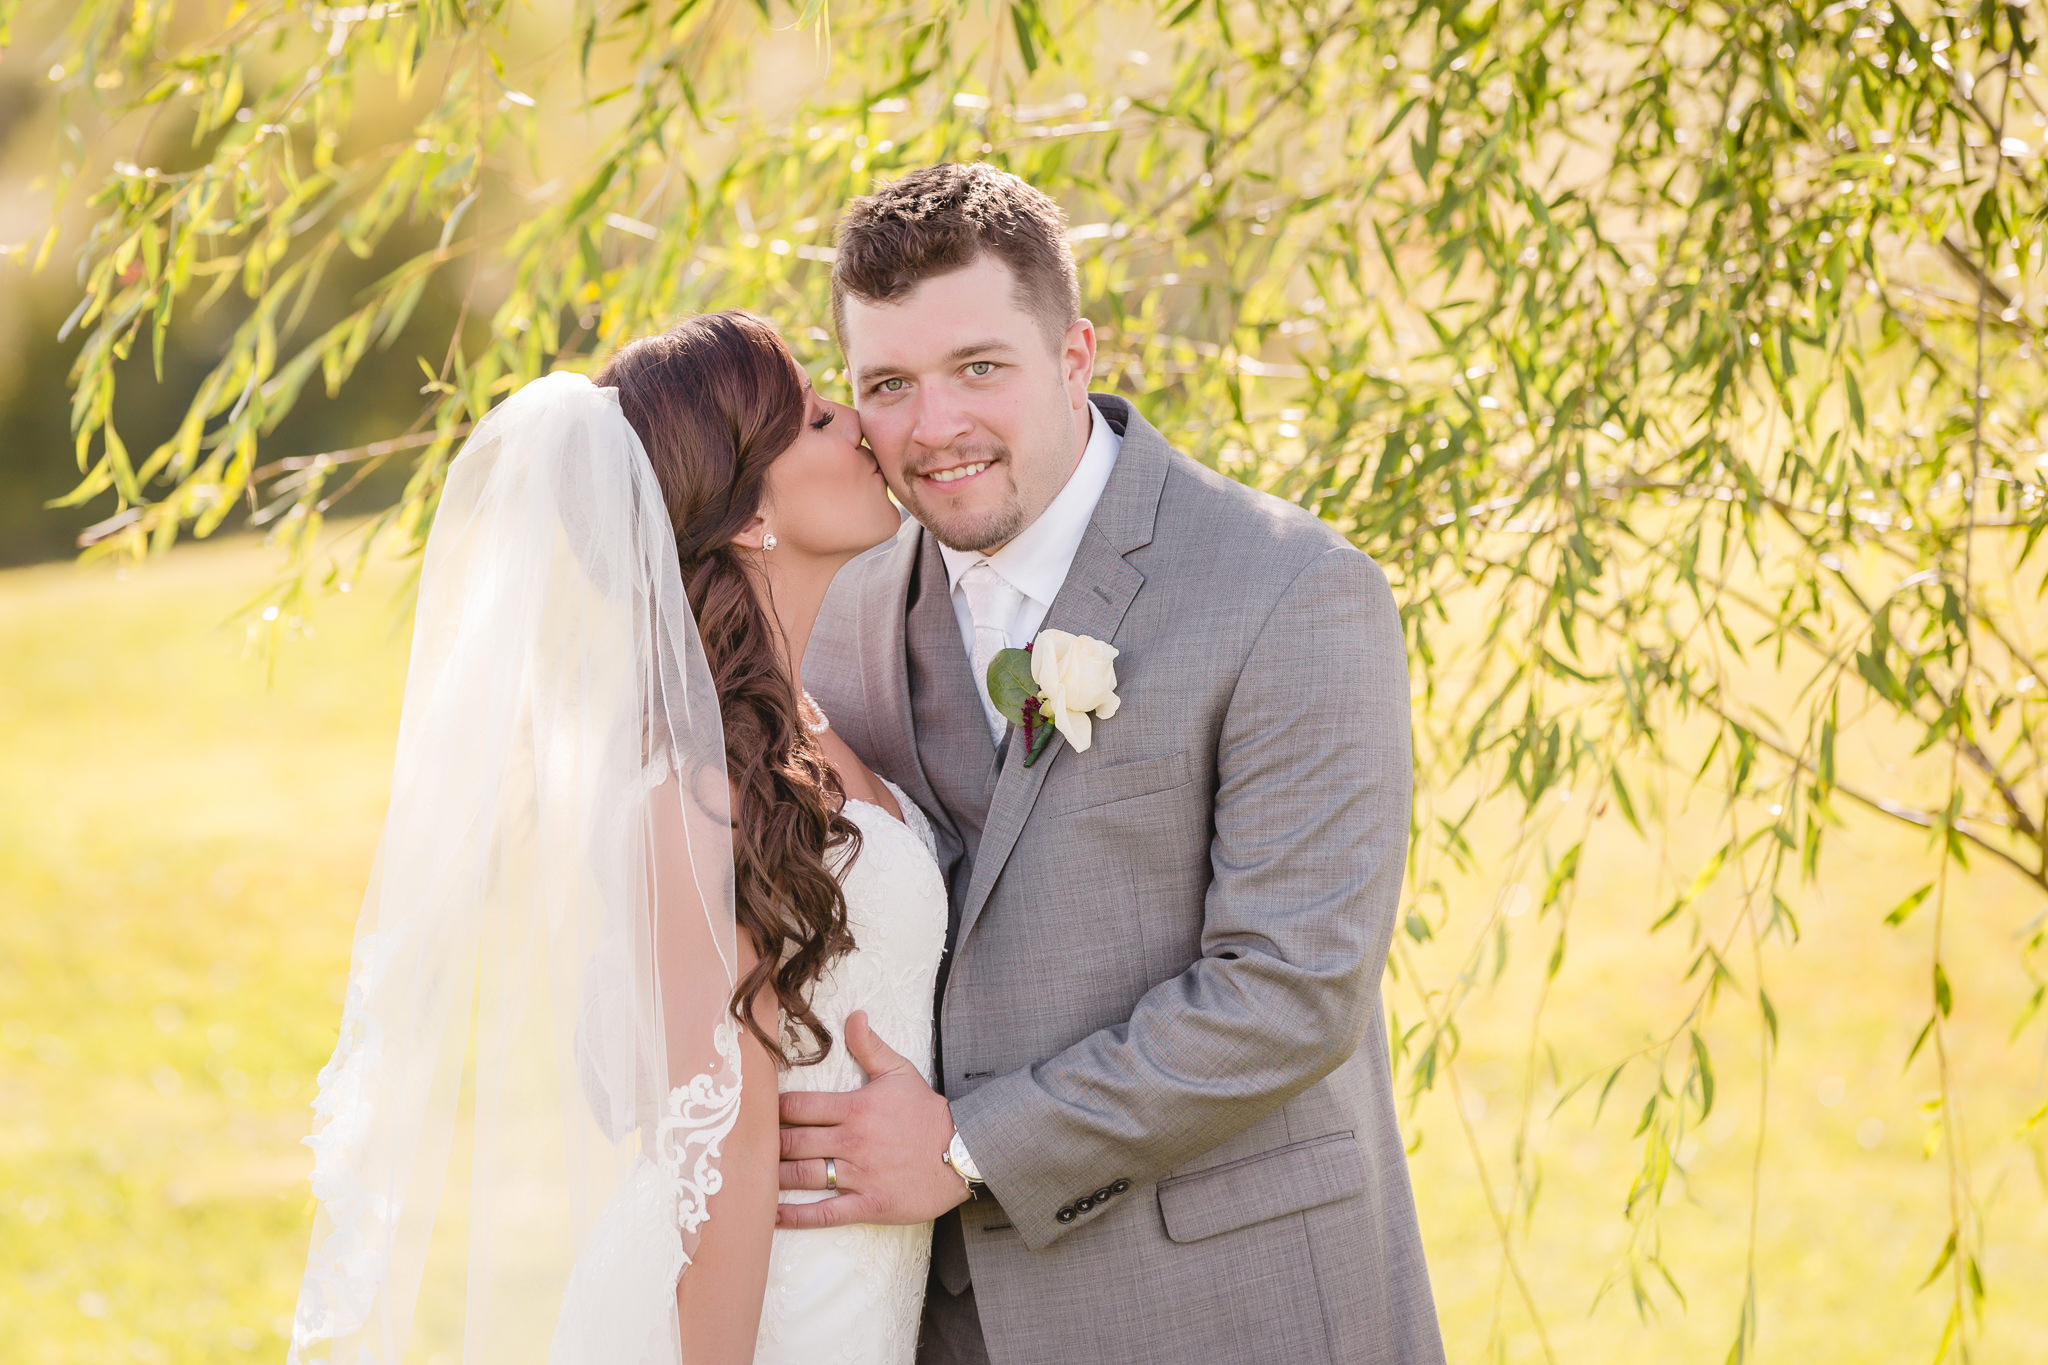 Bride kisses her groom at their White Barn wedding